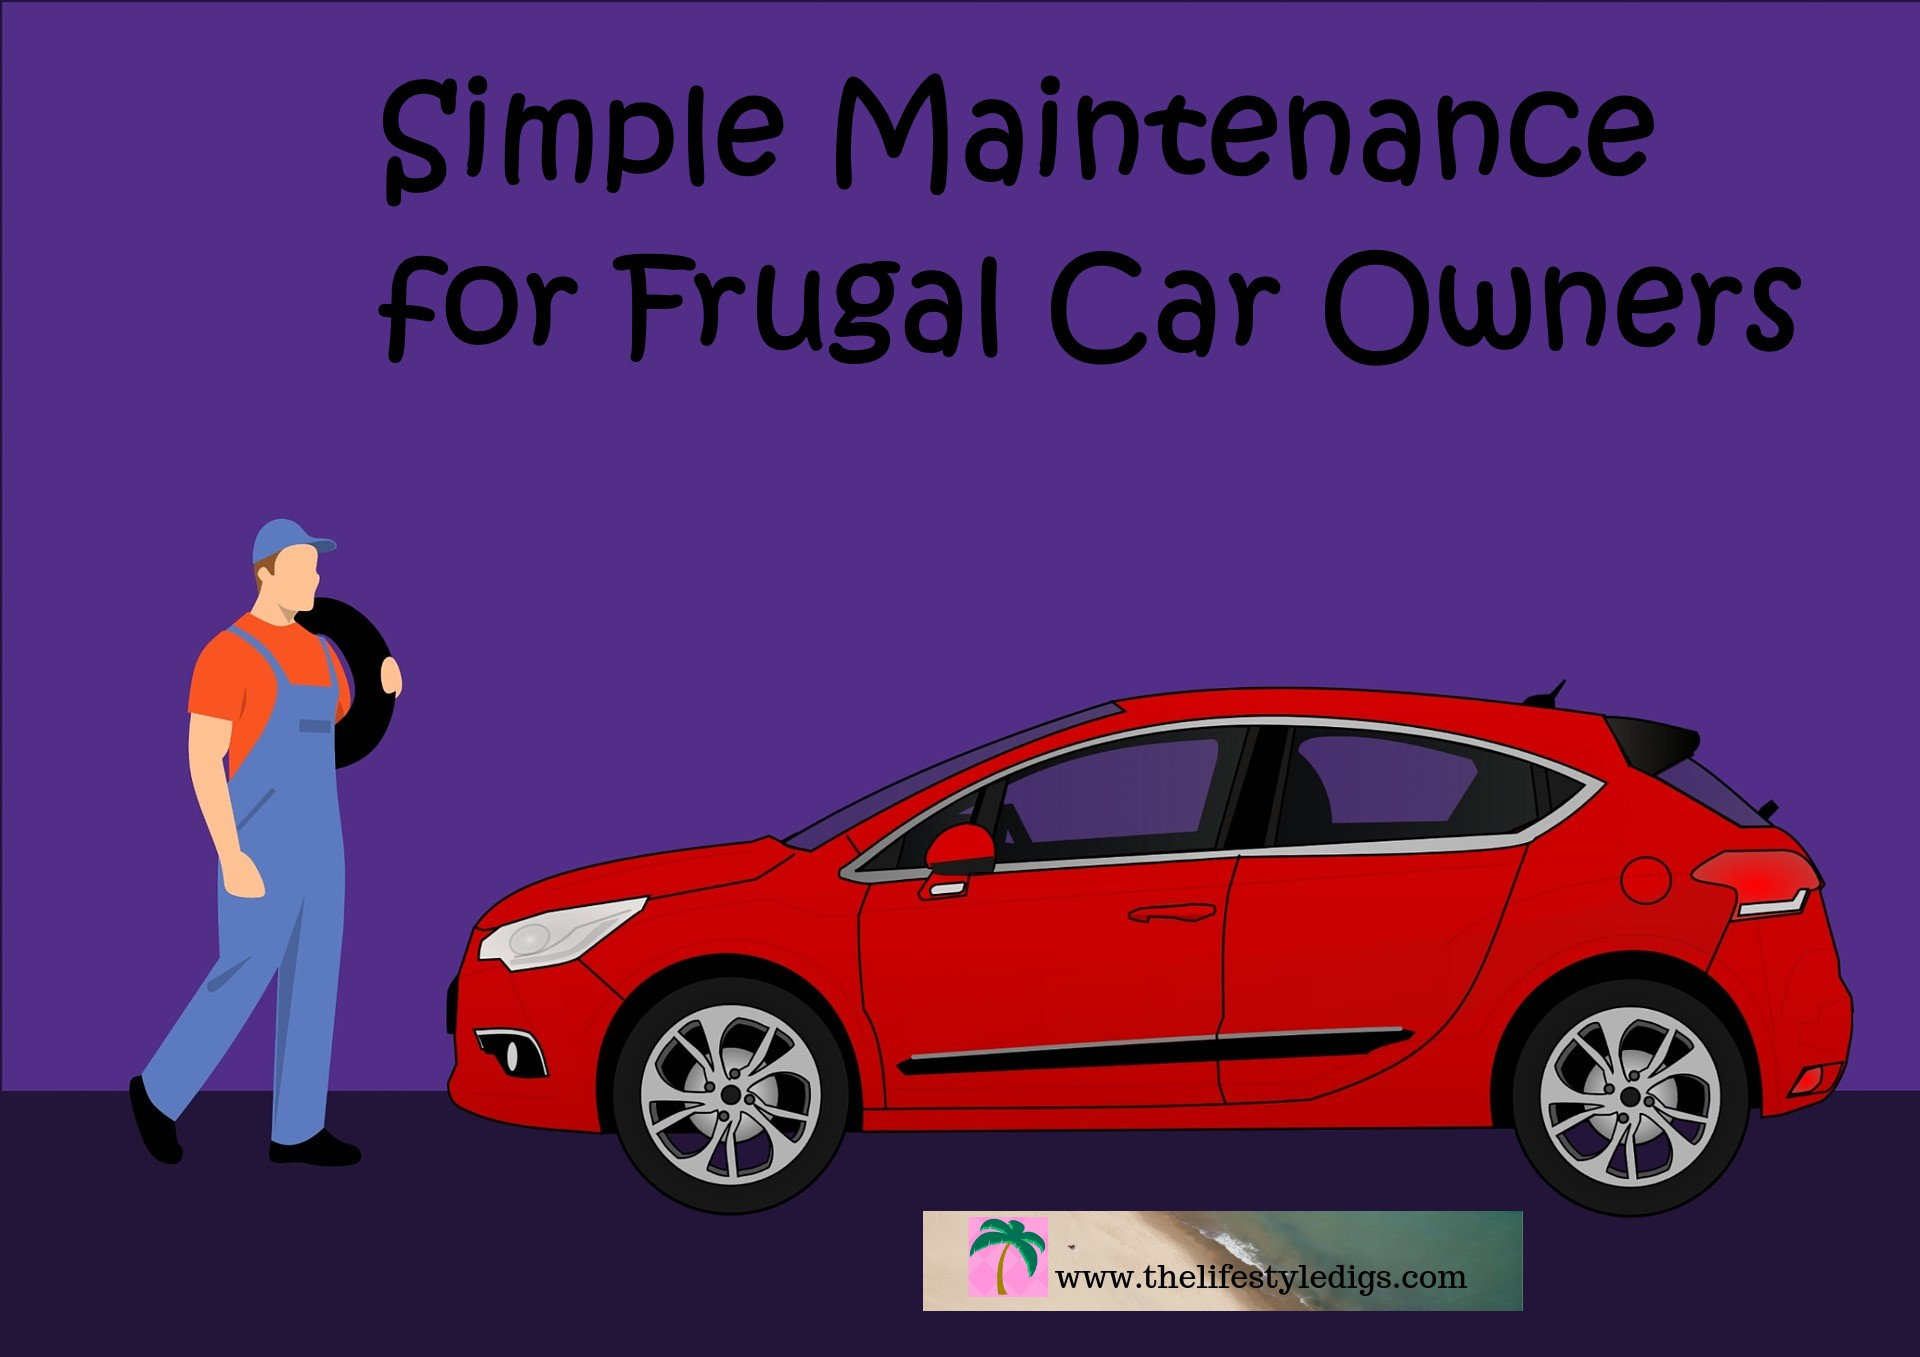 Simple Maintenance for Frugal Car Owners